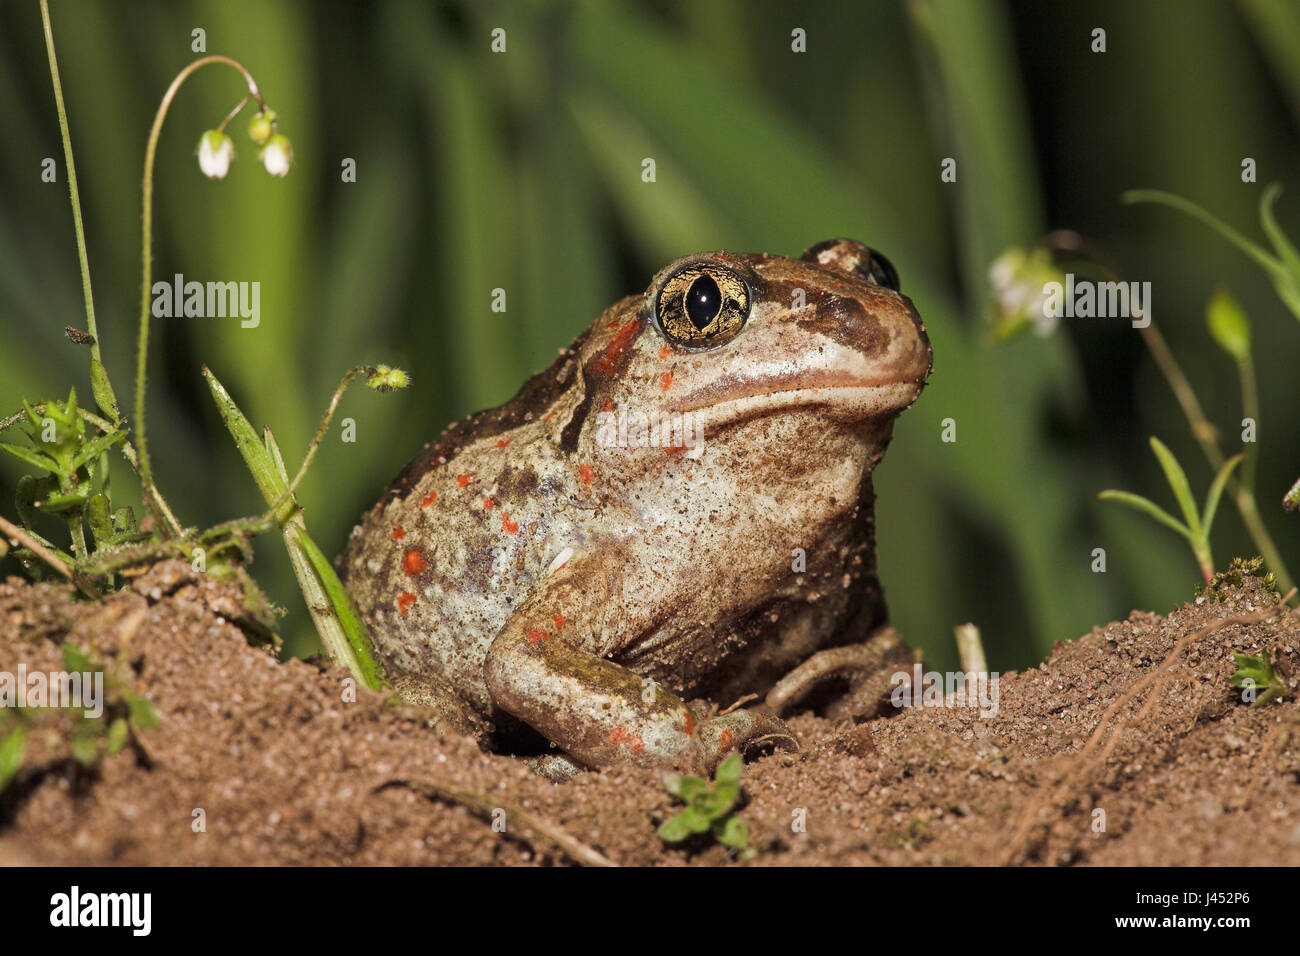 portrait of a common spadefoot on agricultural land that is specially managed for the species that needs loose soil - Stock Image